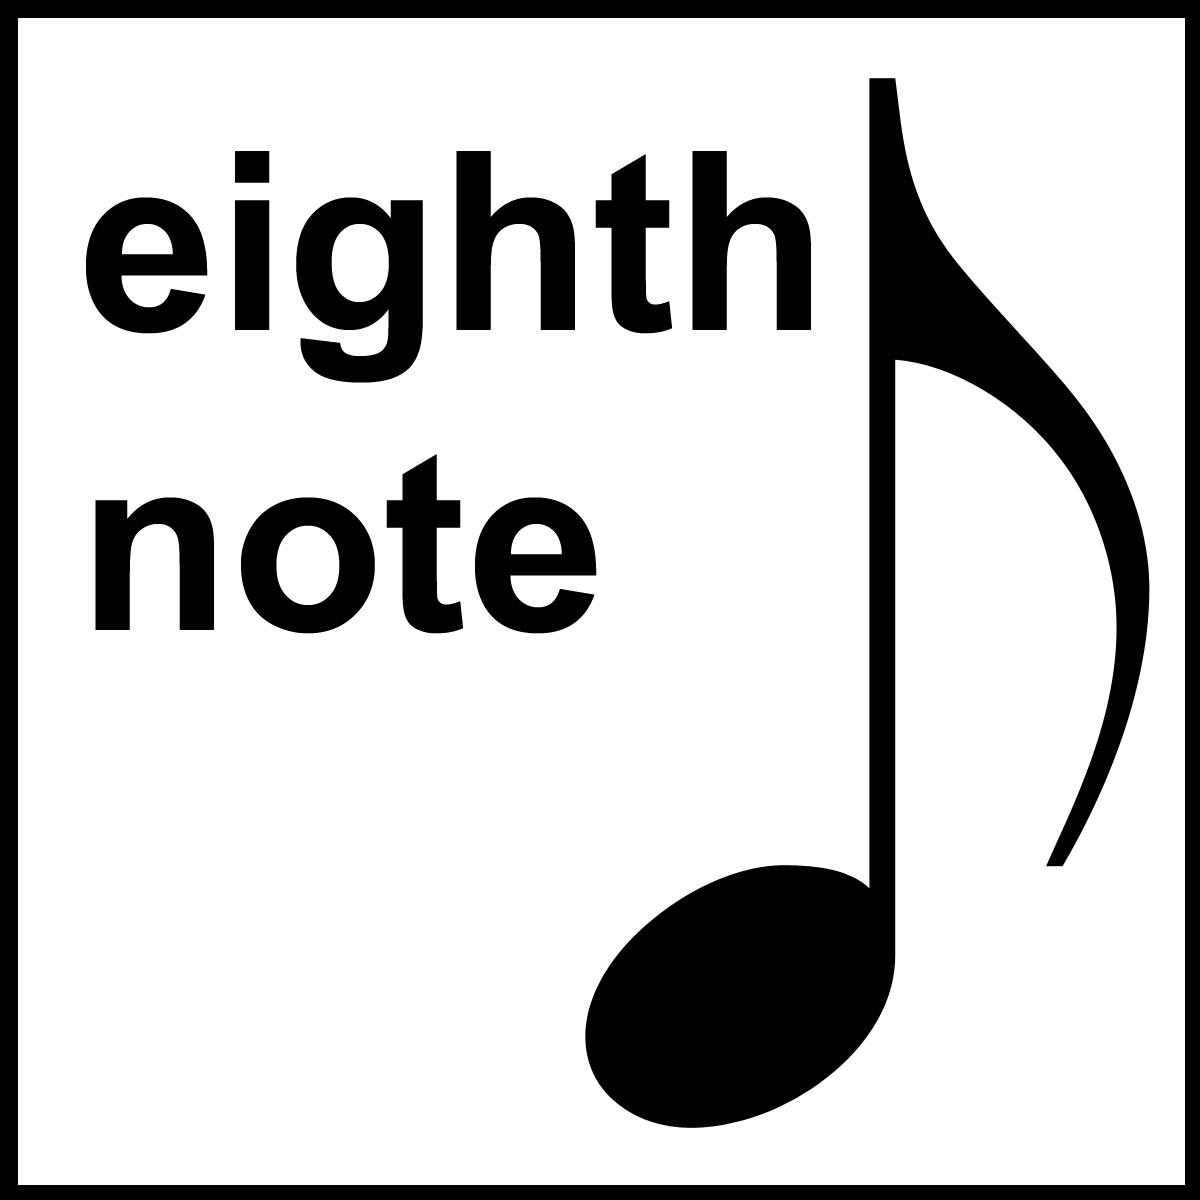 Music Notation Notes Music Movement And Drama For Kids We Are Learning About